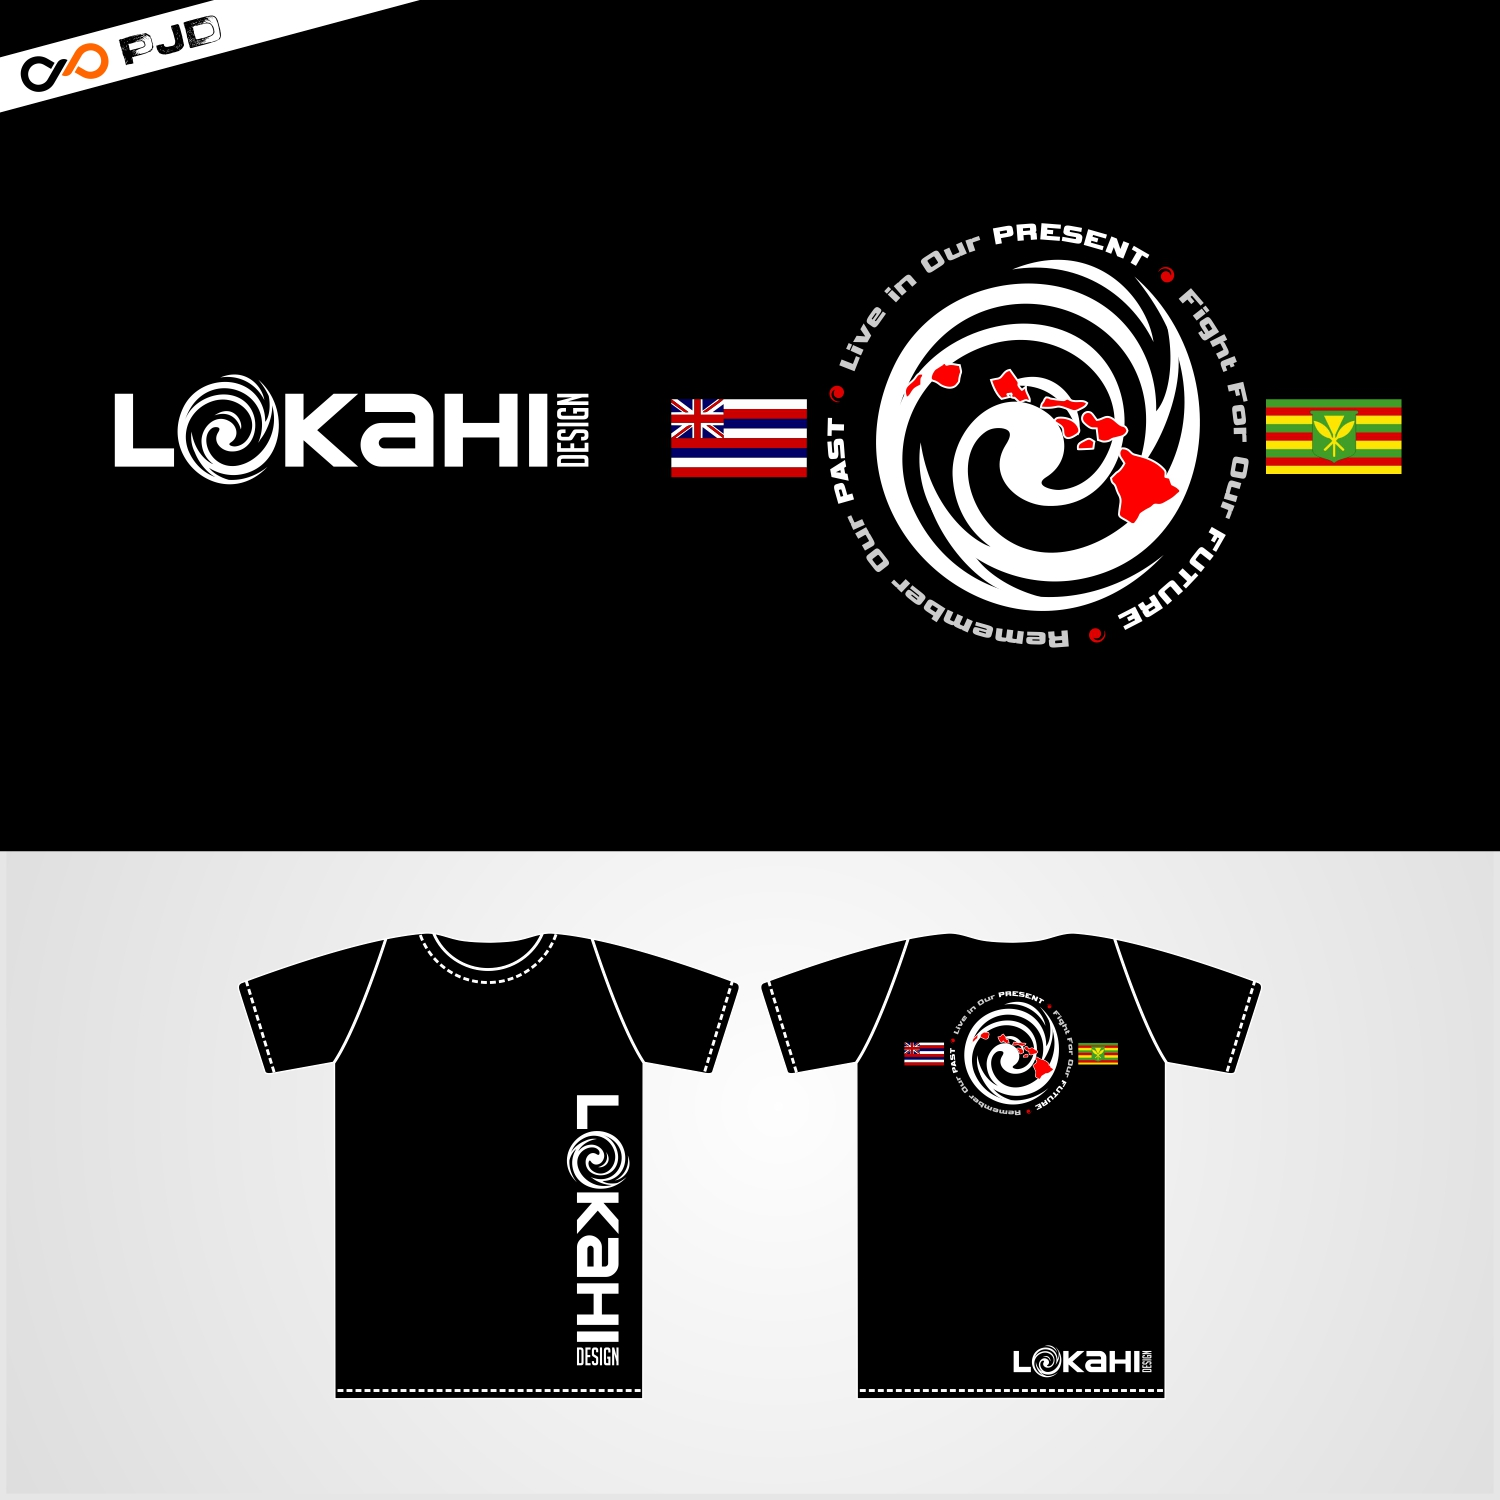 Clothing Design by PJD - Entry No. 115 in the Clothing Design Contest Creative Clothing Design for LOKAHI designs.